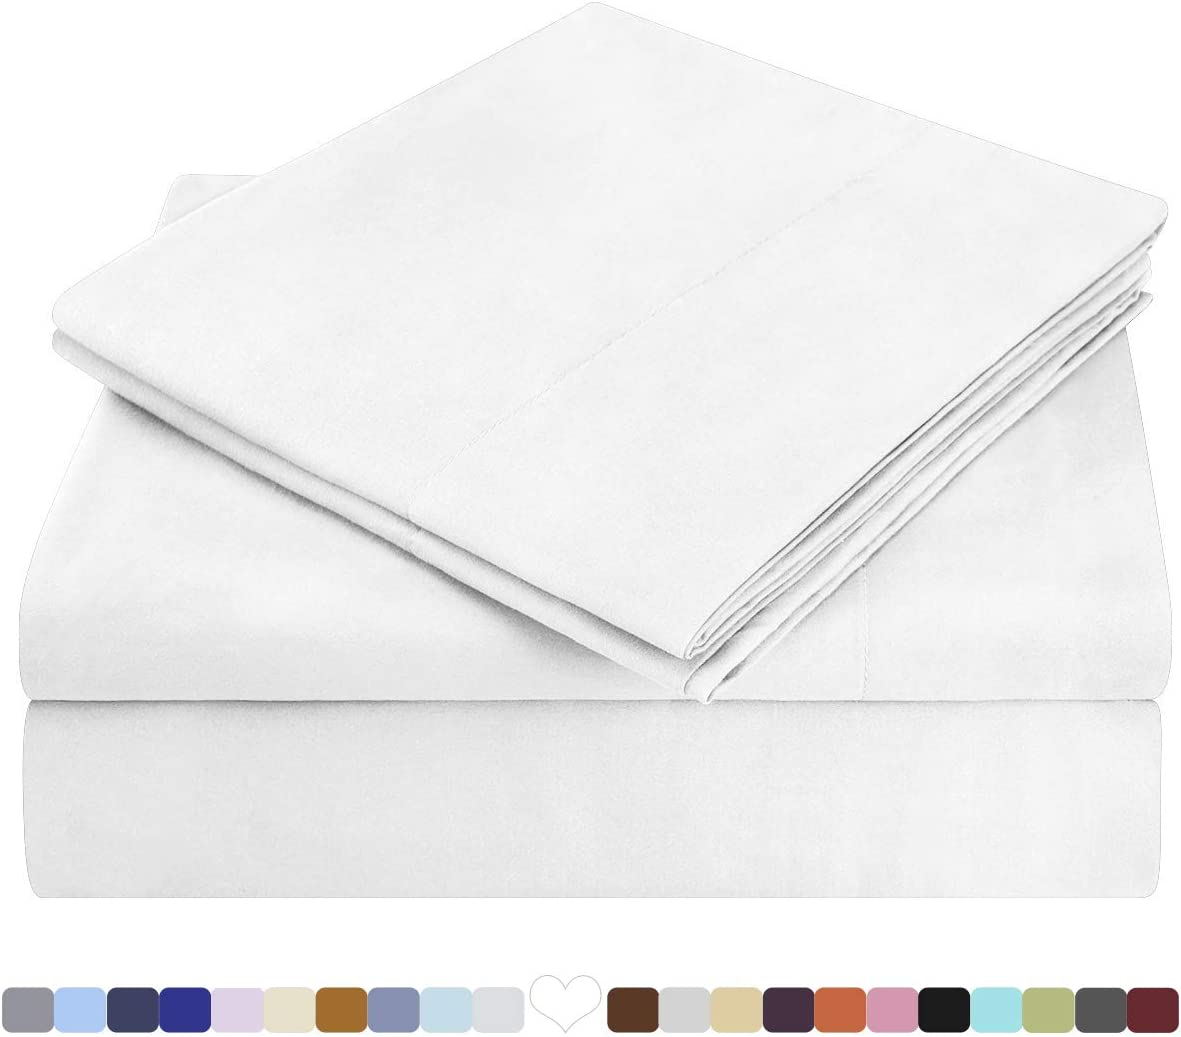 HOMEIDEAS Bed Sheets Set Extra Soft Brushed Microfiber 1800 Bedding Sheets